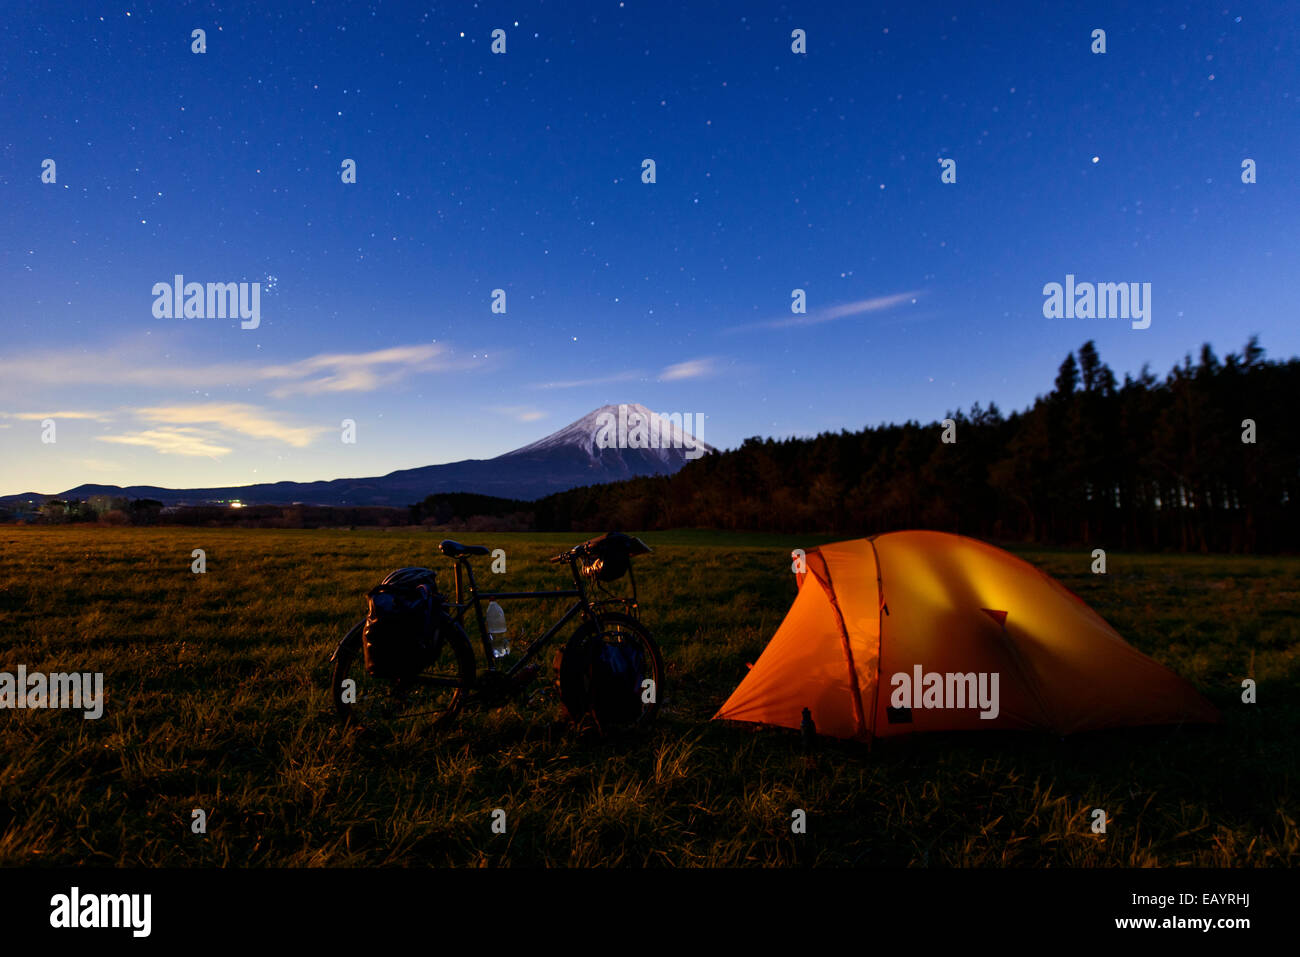 Camping near mount Fuji, Japan - Stock Image